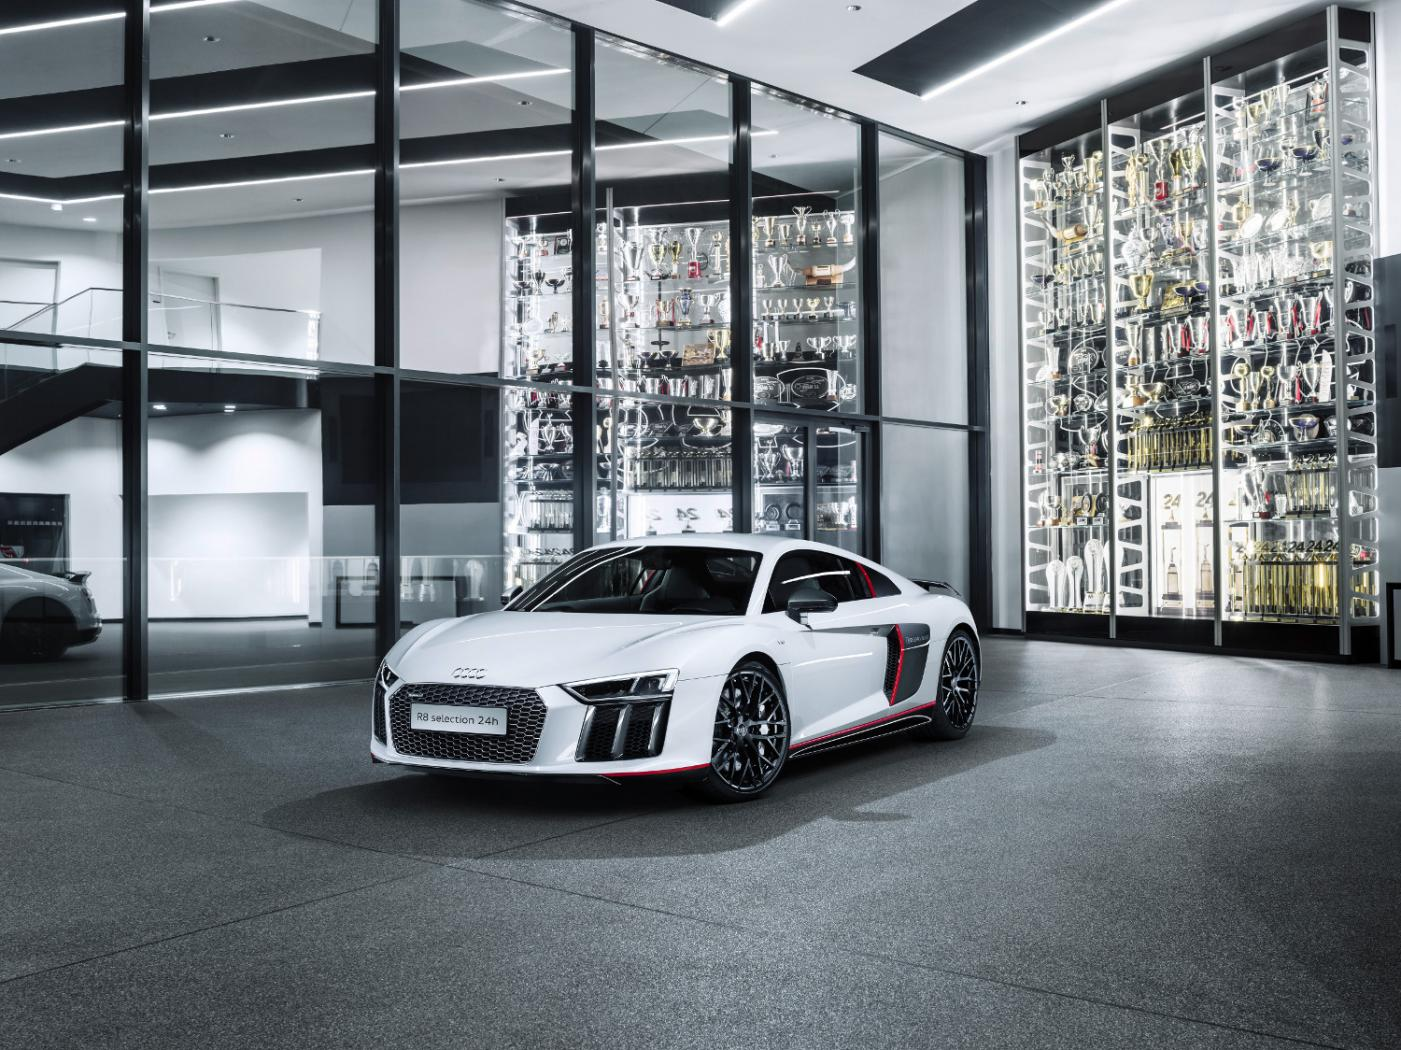 1-audi-r8-coupe-v10-plus-selection-24h.jpeg